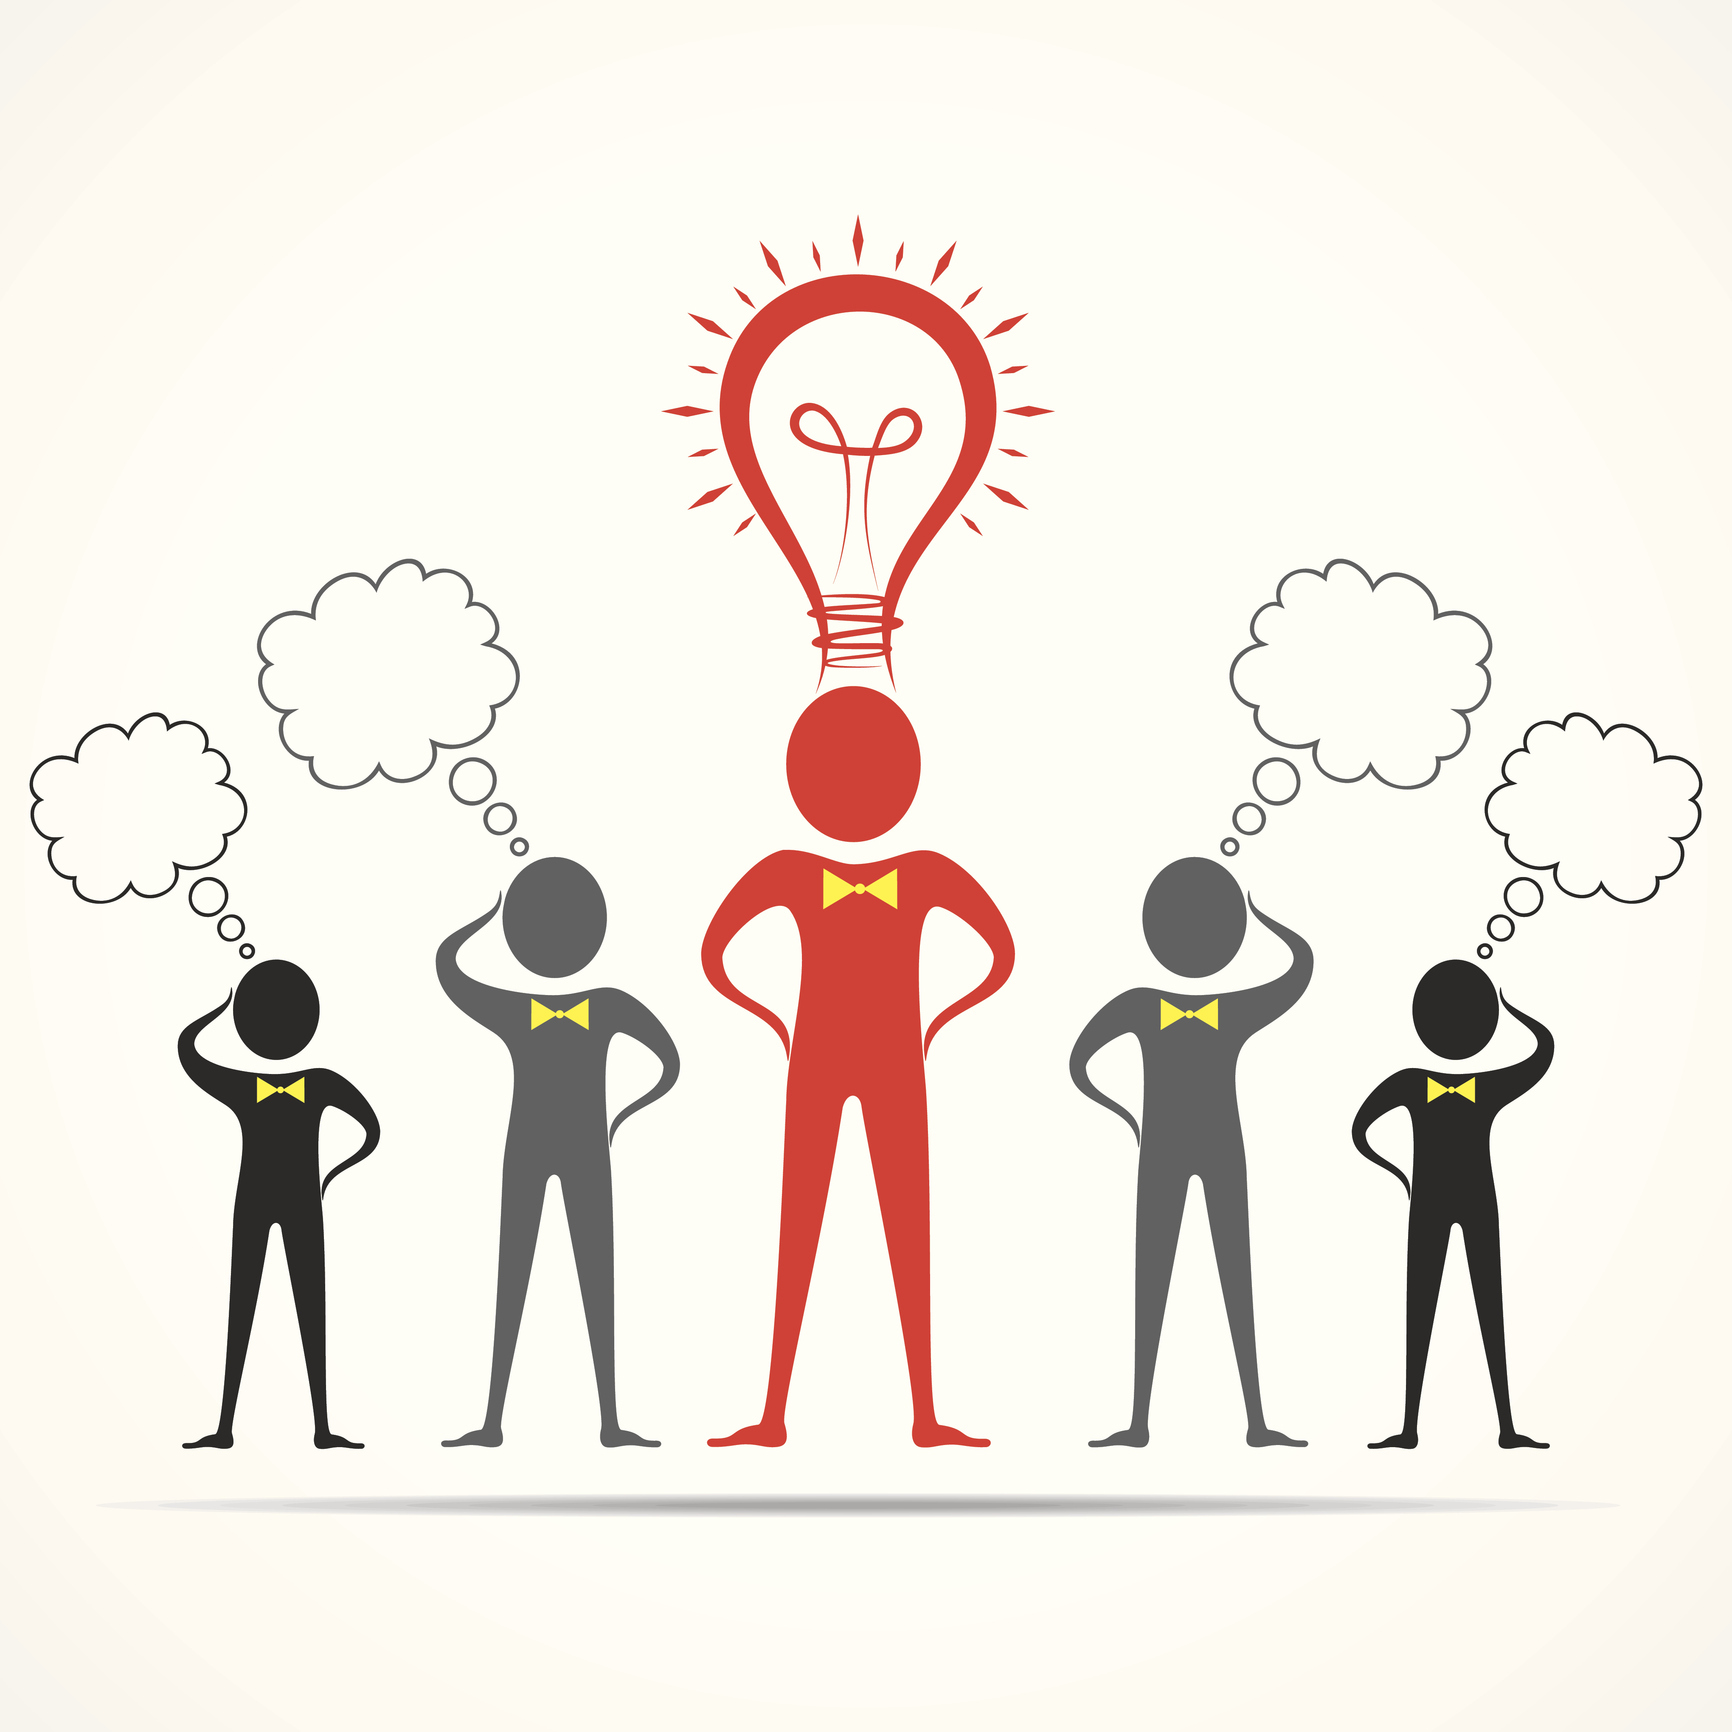 unleash the power of innovation in your career